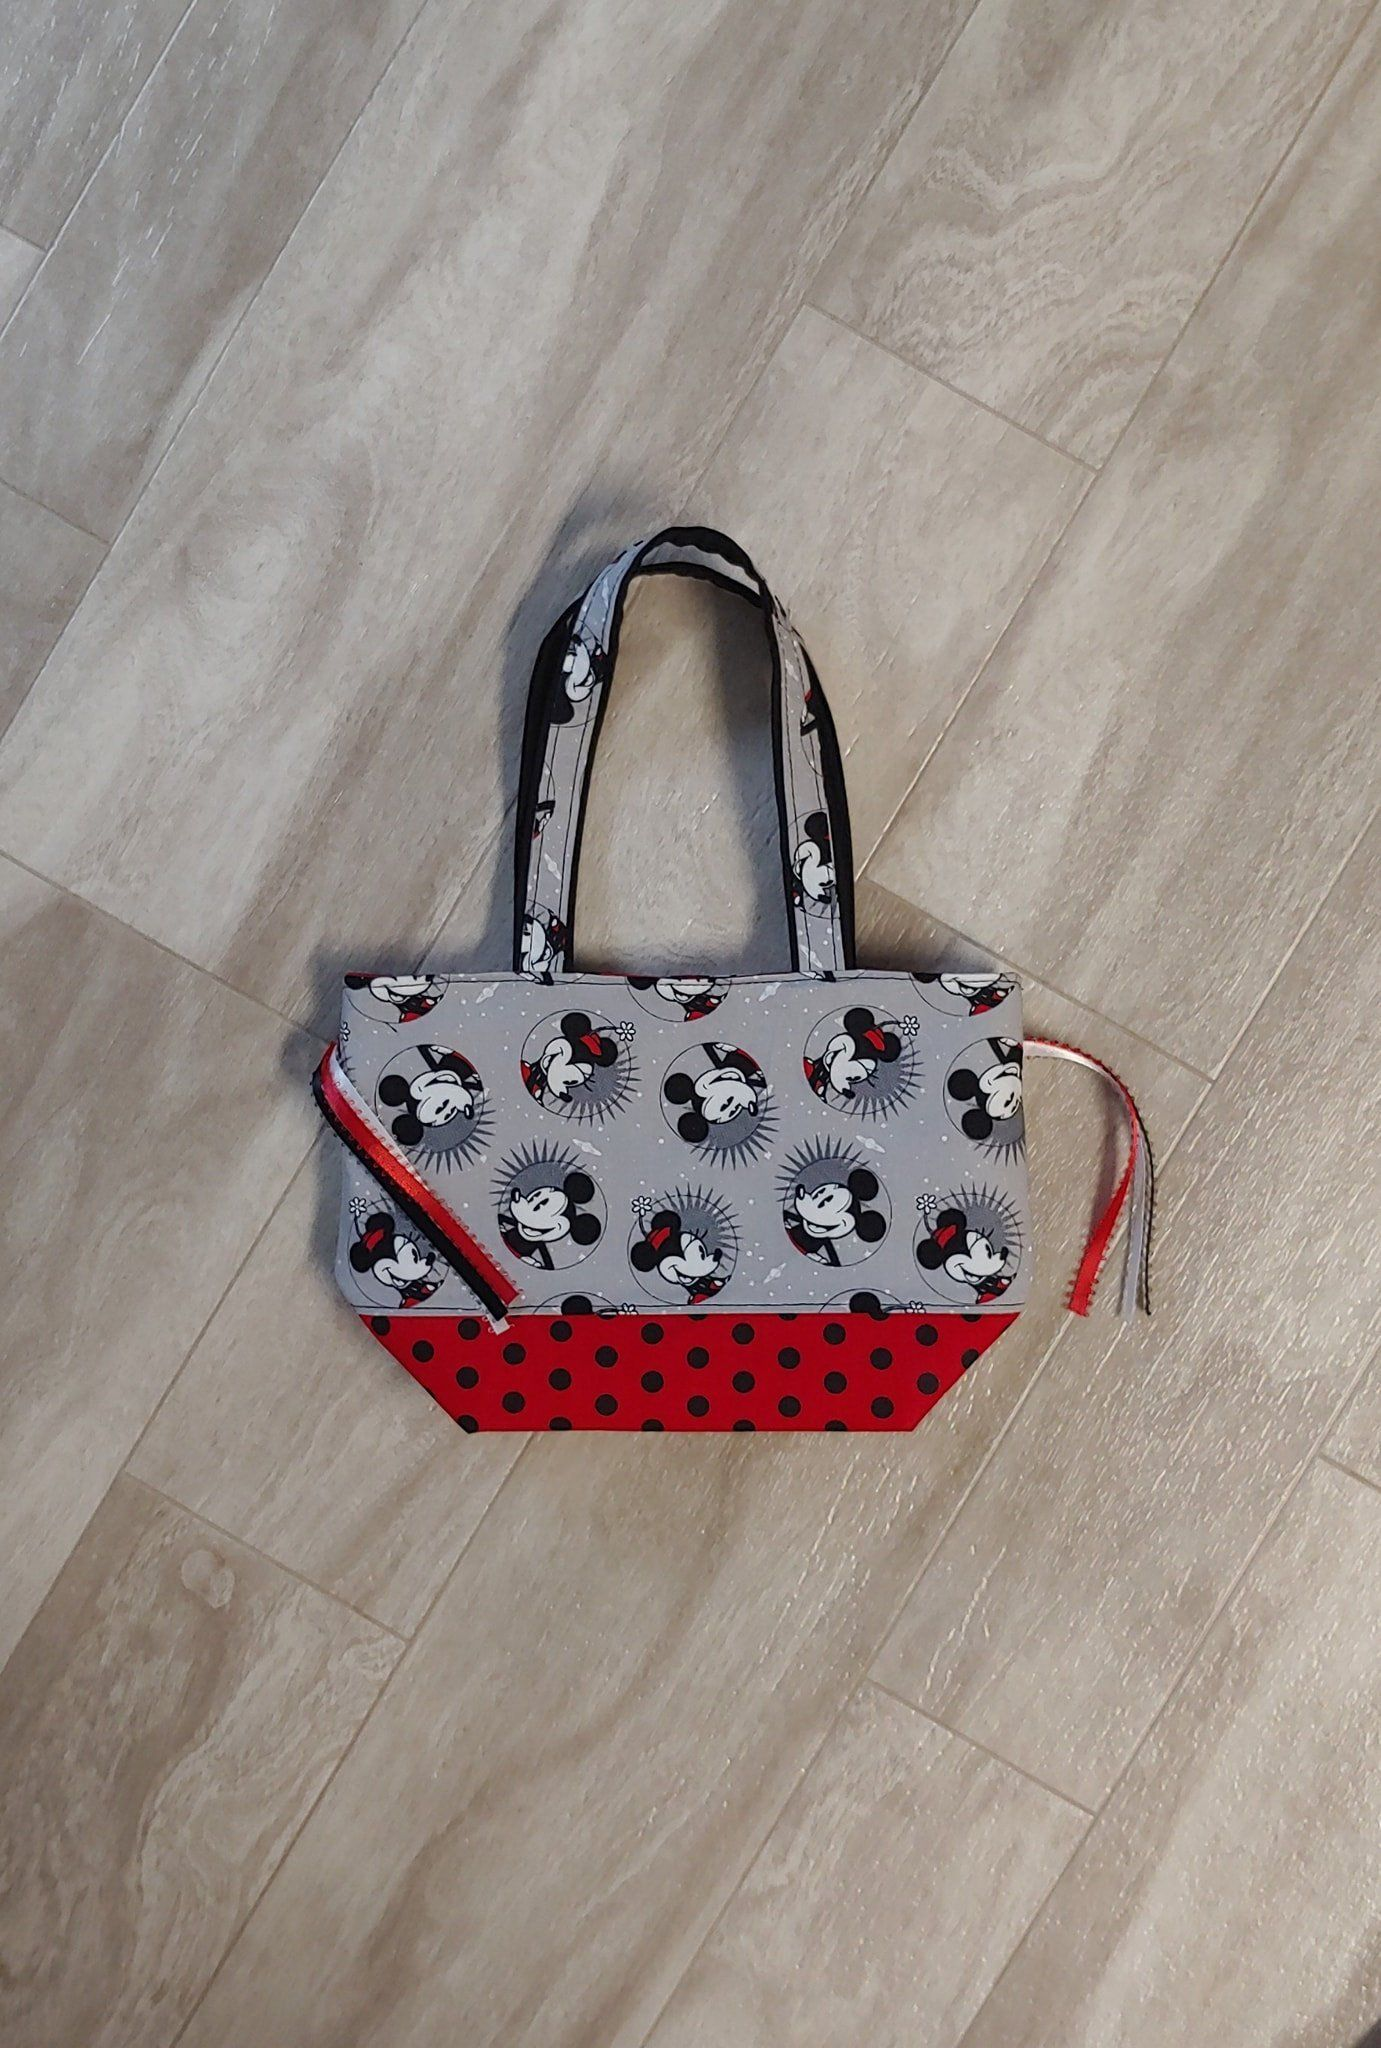 Little Purse Toddler Mickey Mouse Bags And Purses Gift